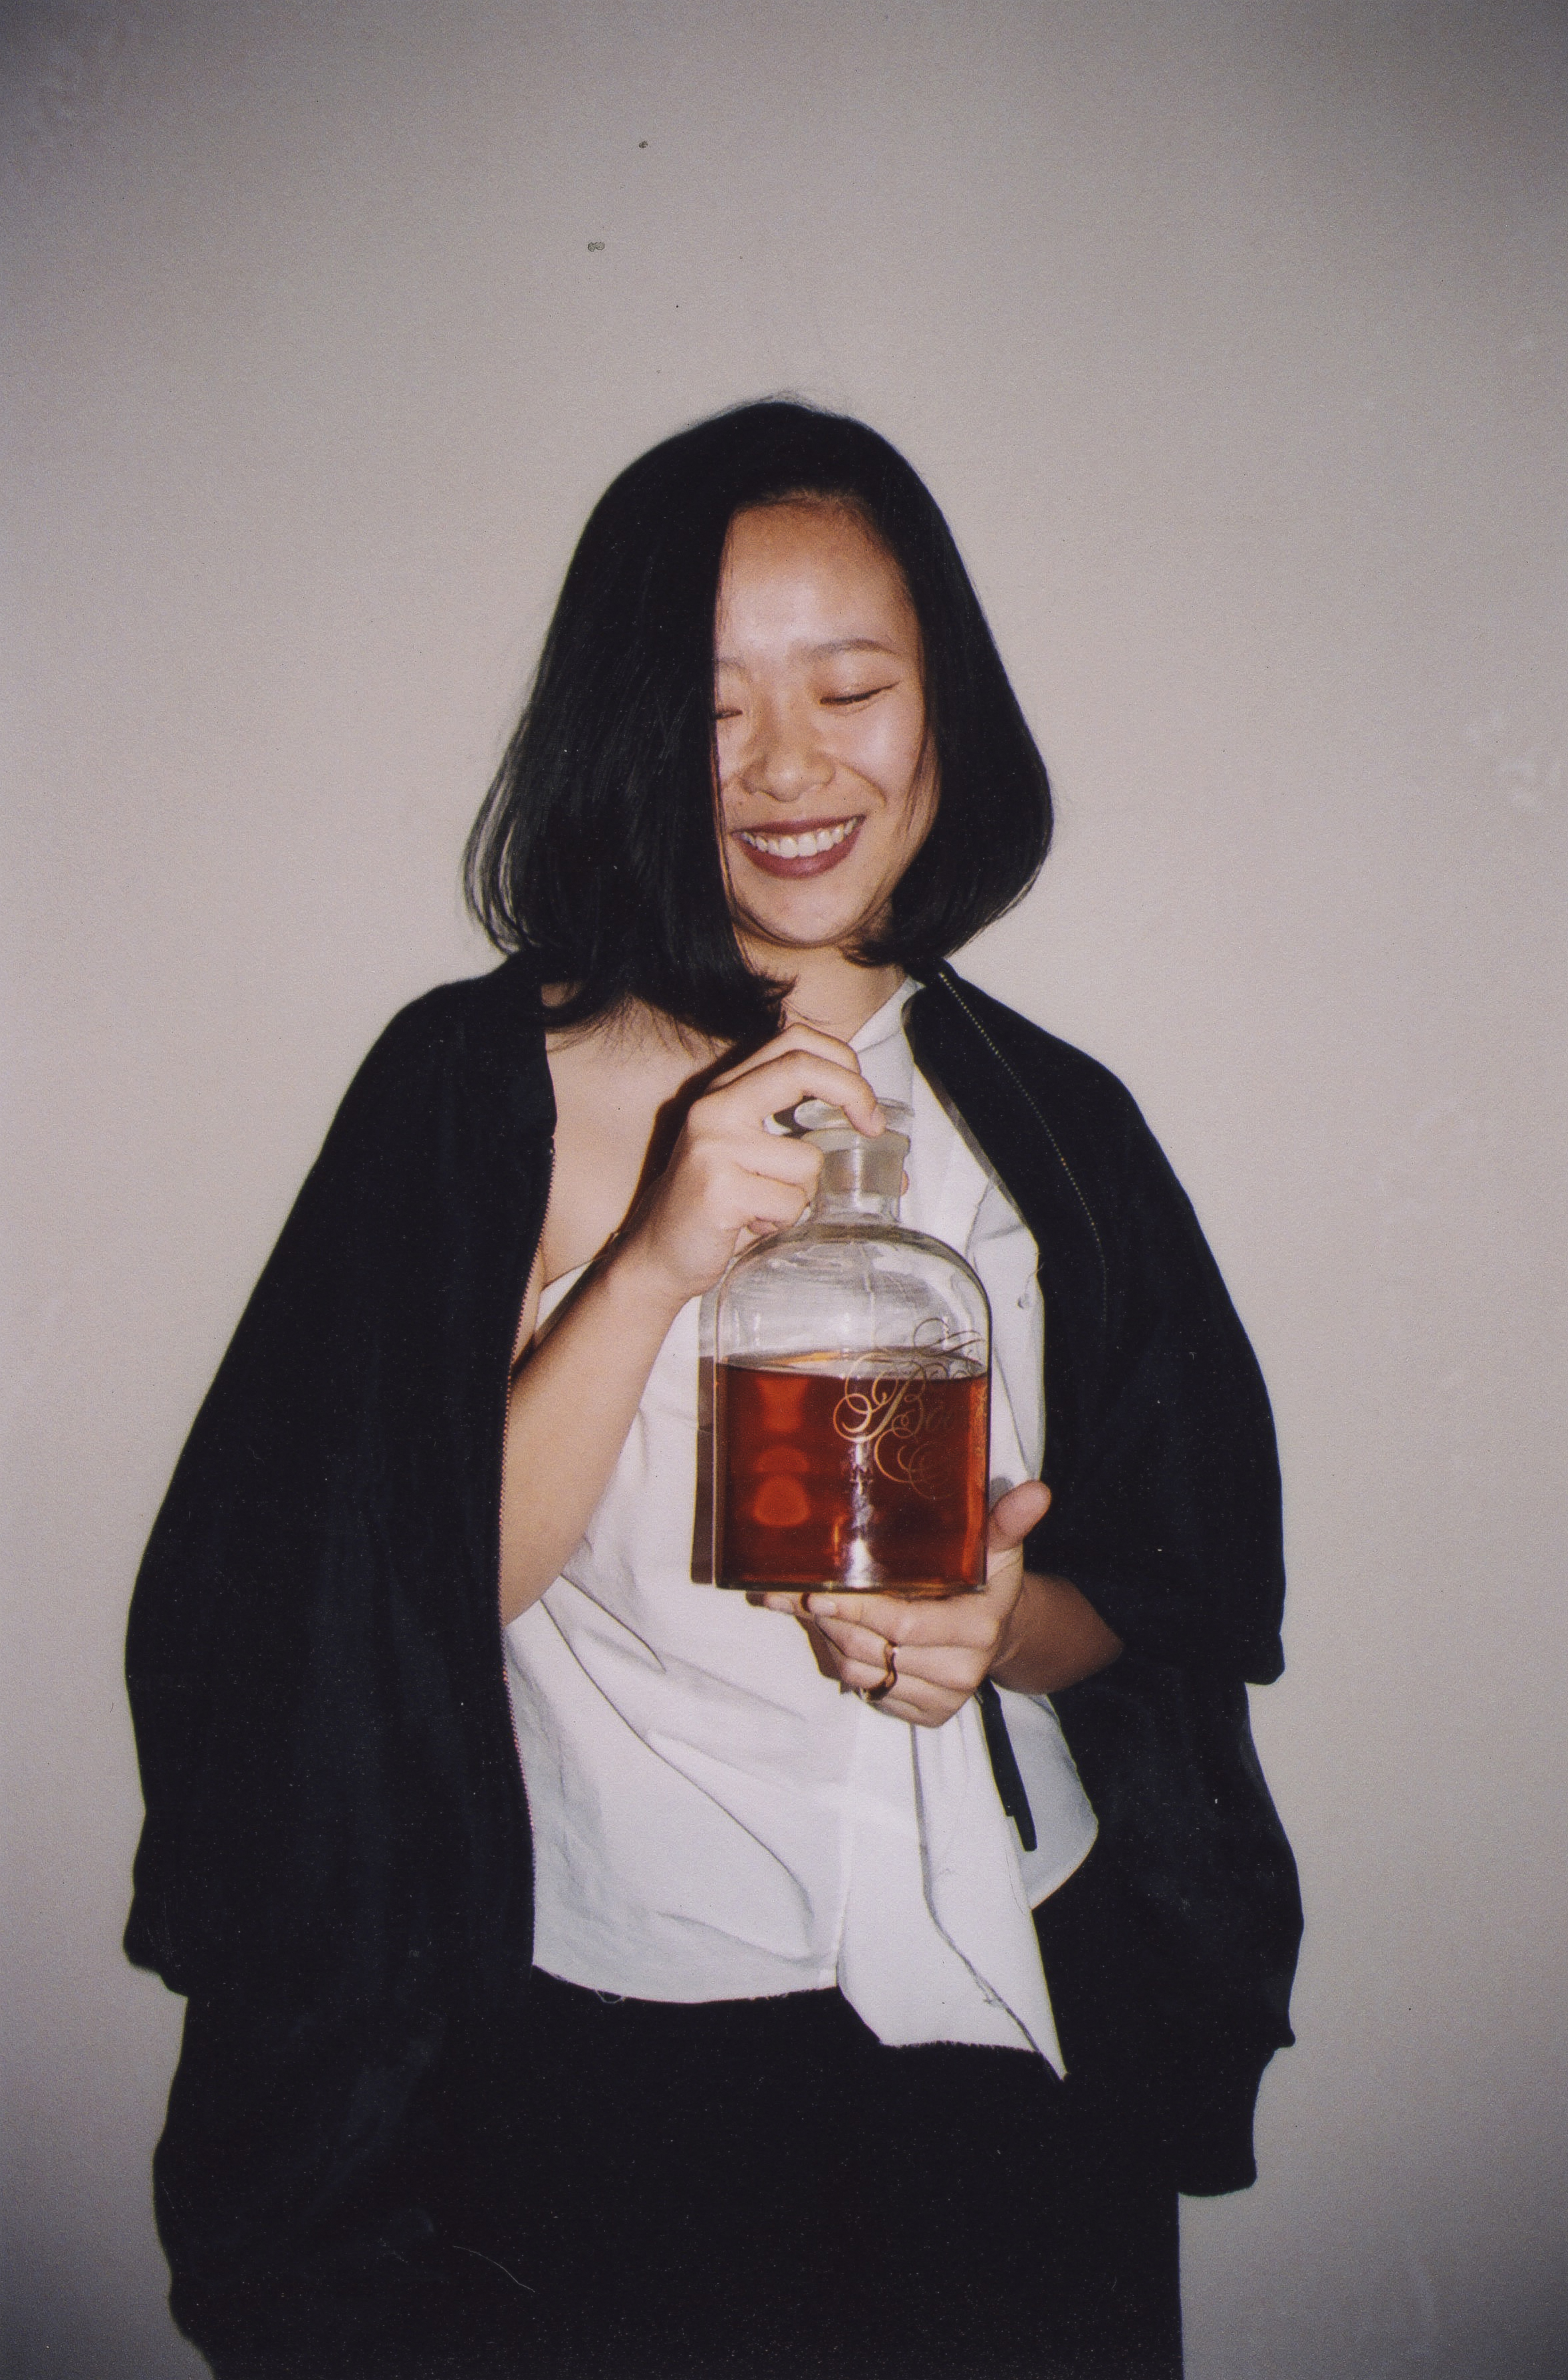 Shang with Whiskey.jpg